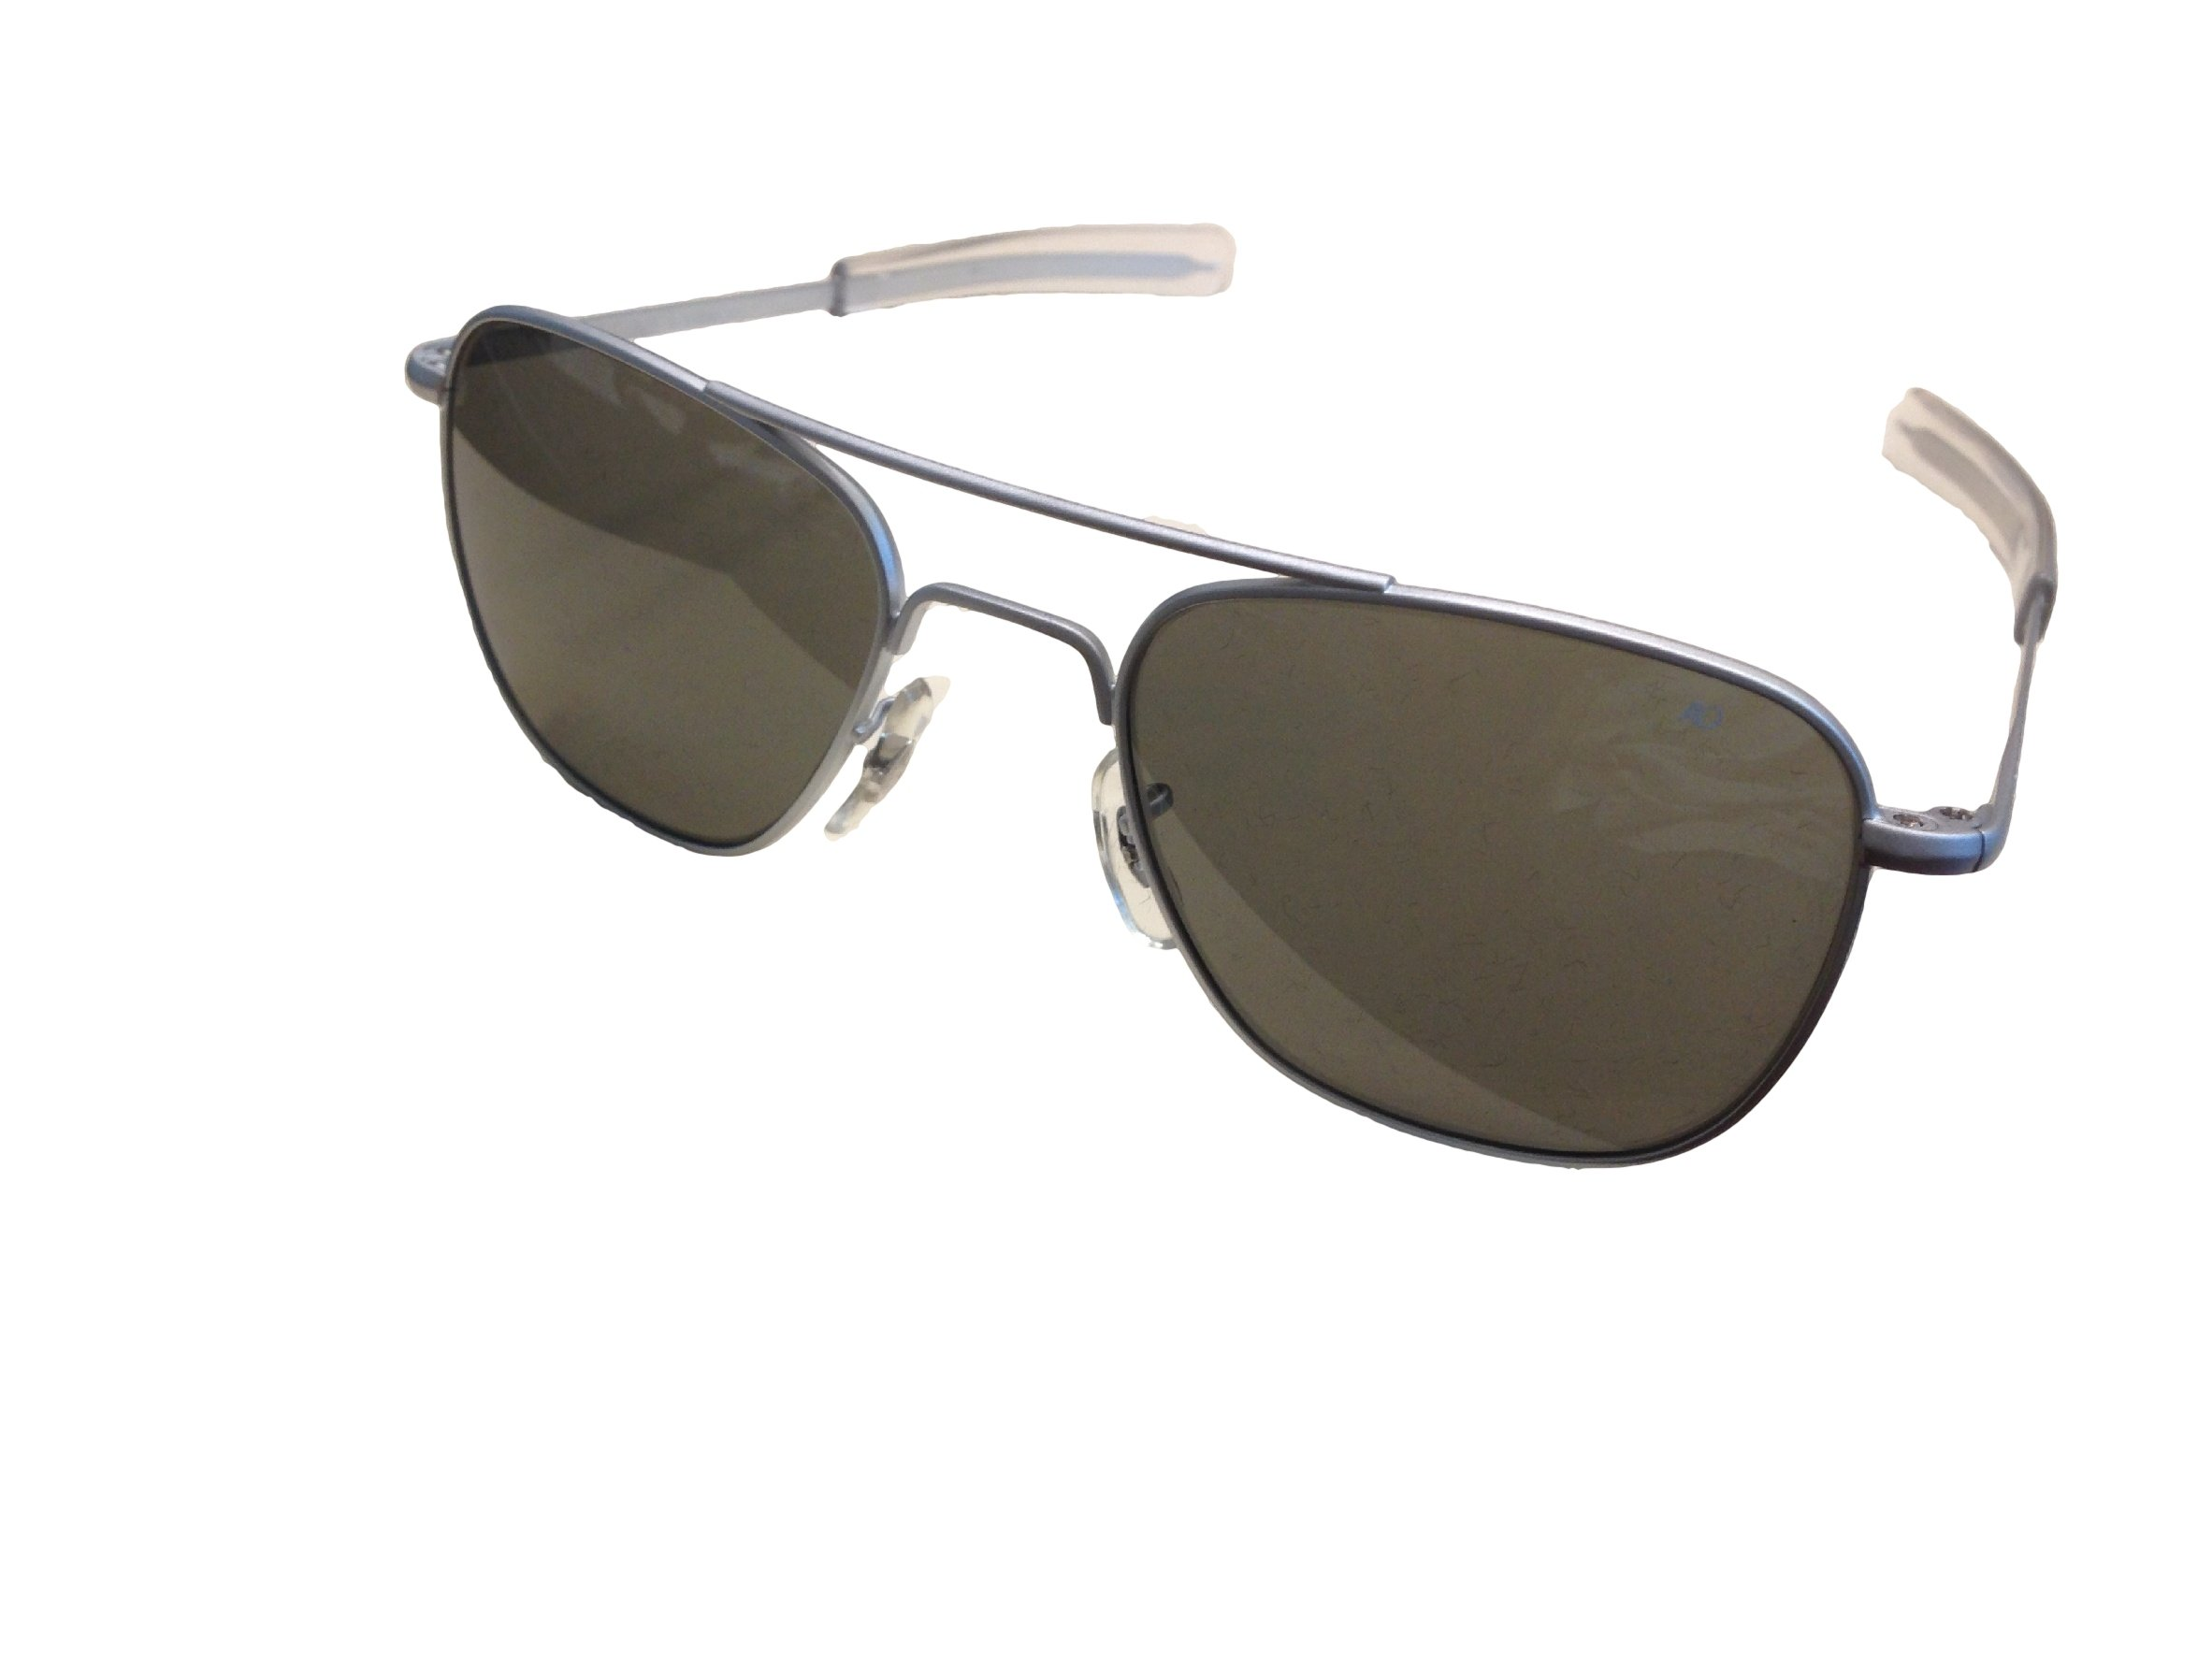 American Optical Original Pilot Eyewear 57mm Matte Chrome Frame with Bayonet Temples and True Color Gray Glass Lens by AO Eyewear